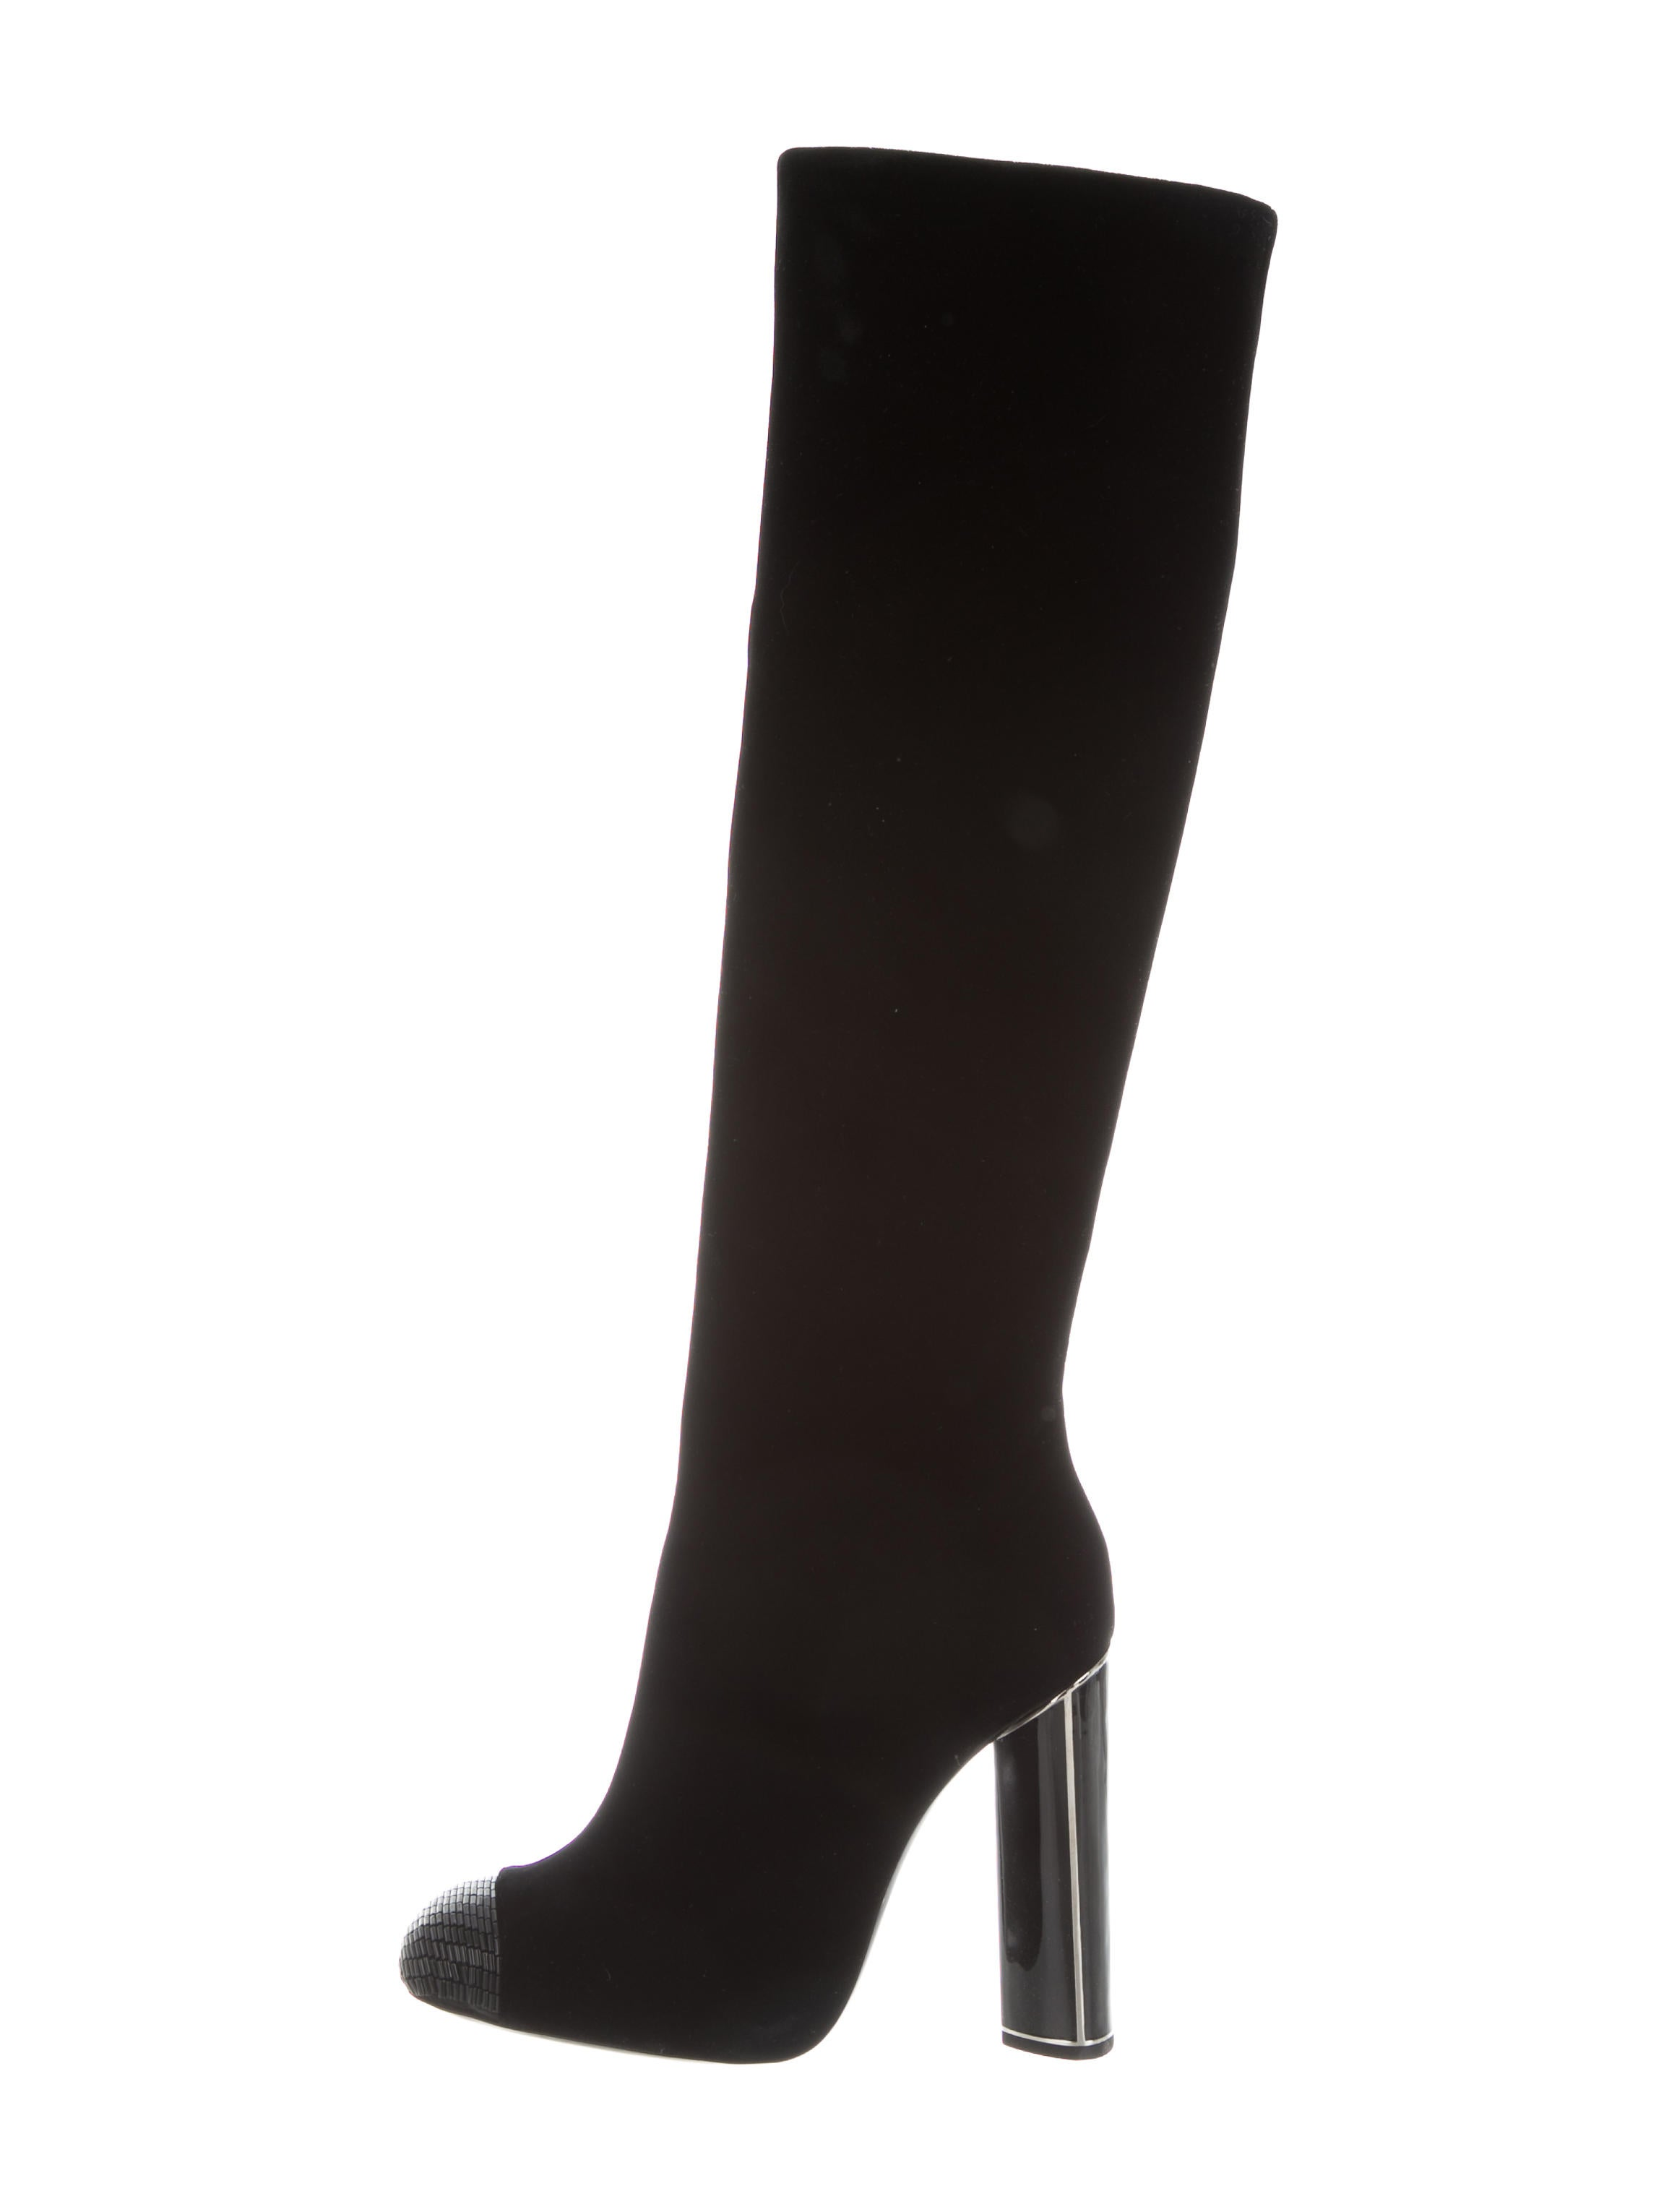 Tom Ford Velvet Knee-High Boots w/ Tags discount cheapest price discount best seller cheap clearance store outlet nicekicks RqoIof